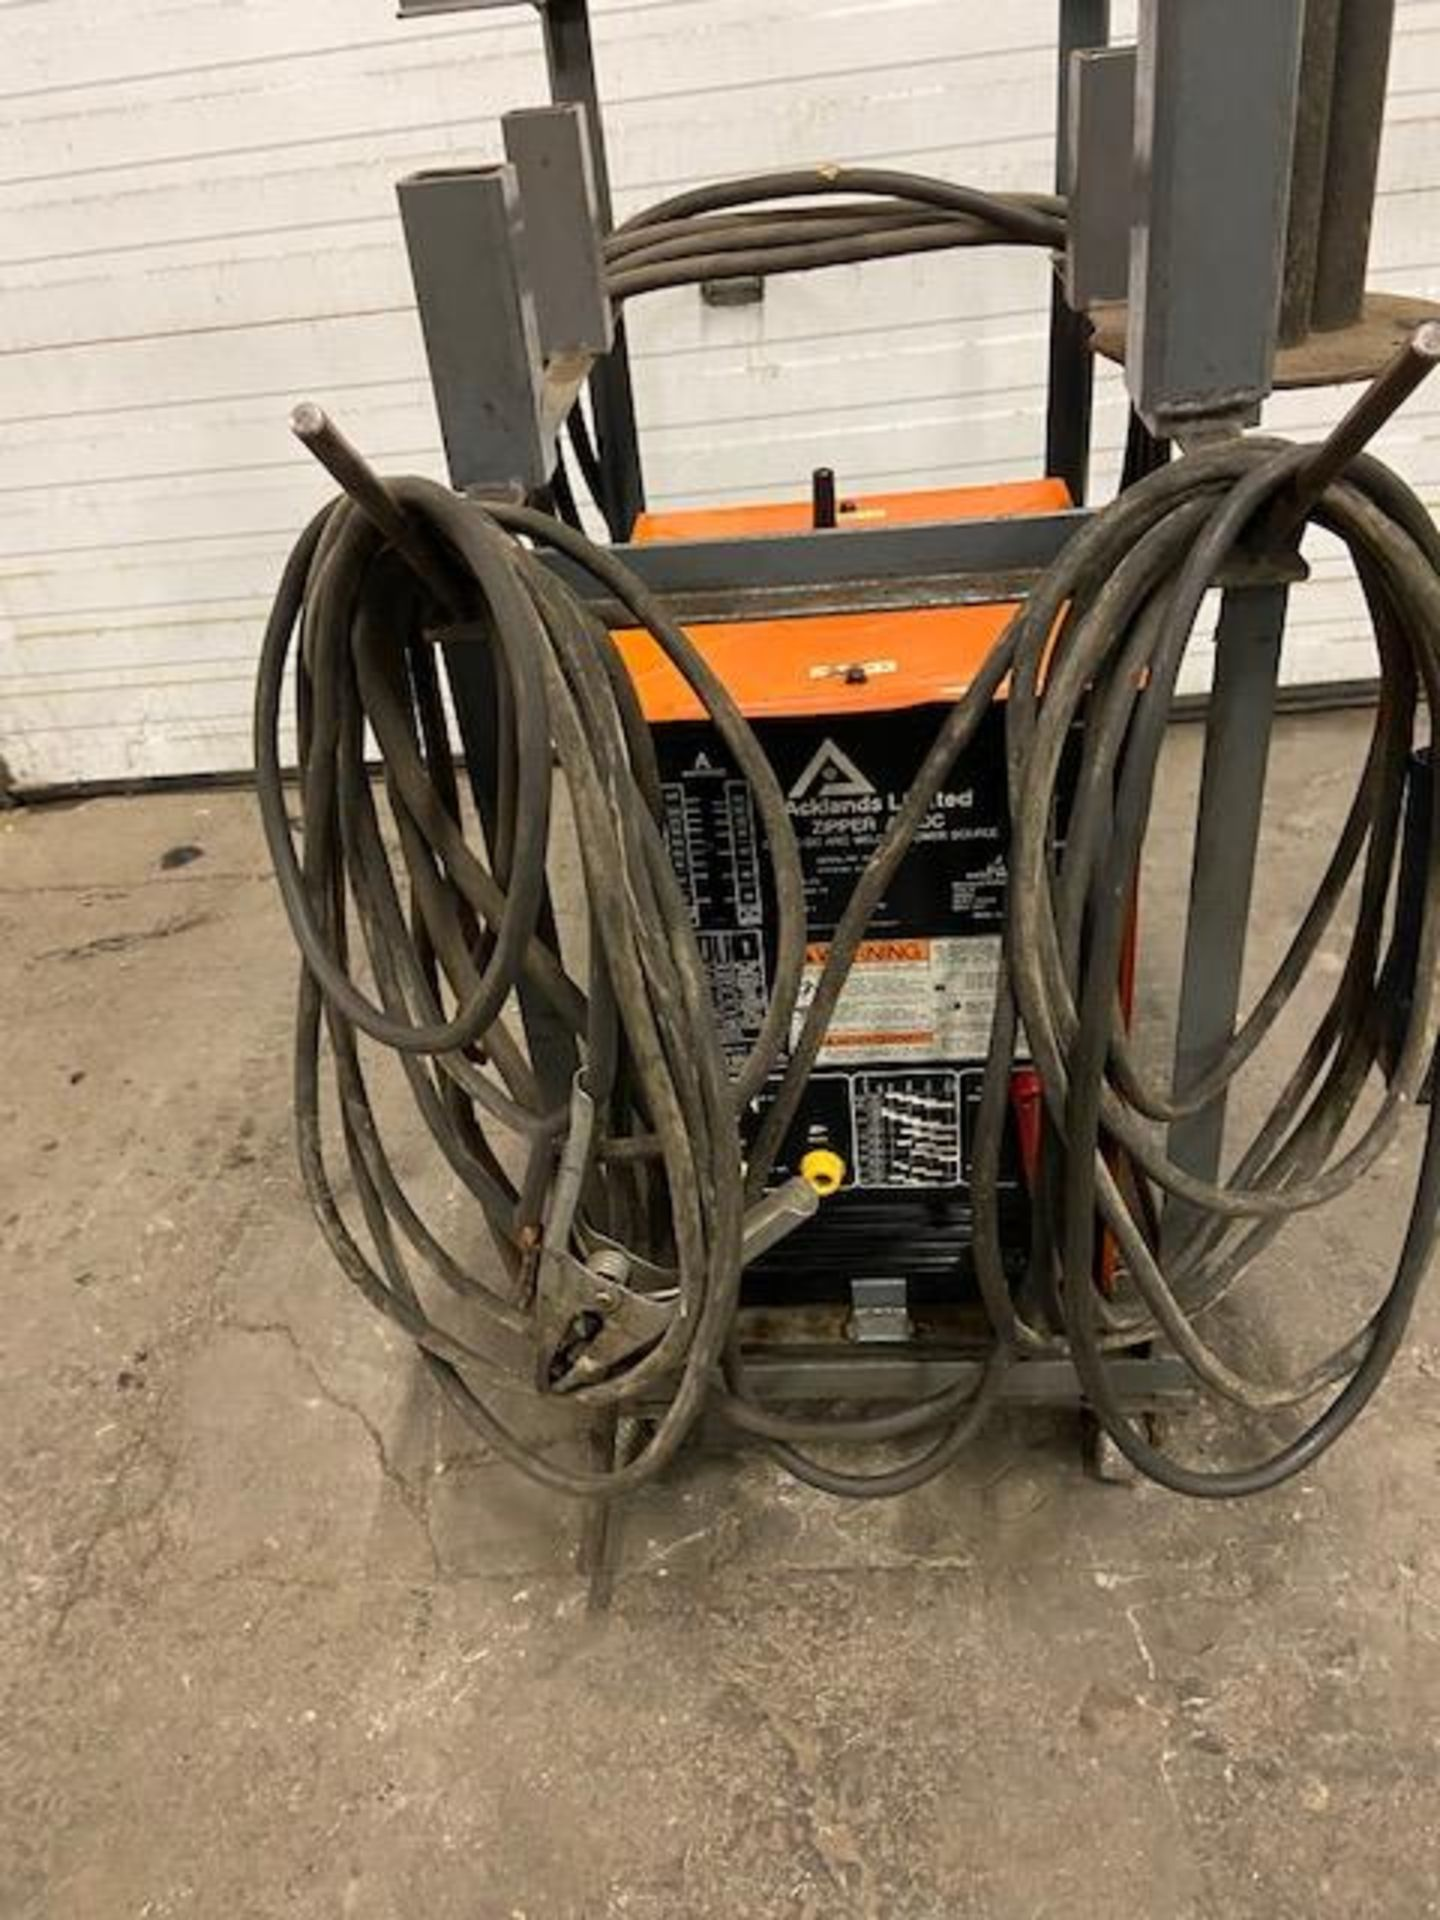 Acklands Liminted CC - AC/DC Arc Welding Stick Welder System 225A unit on cart with cables - Image 3 of 3